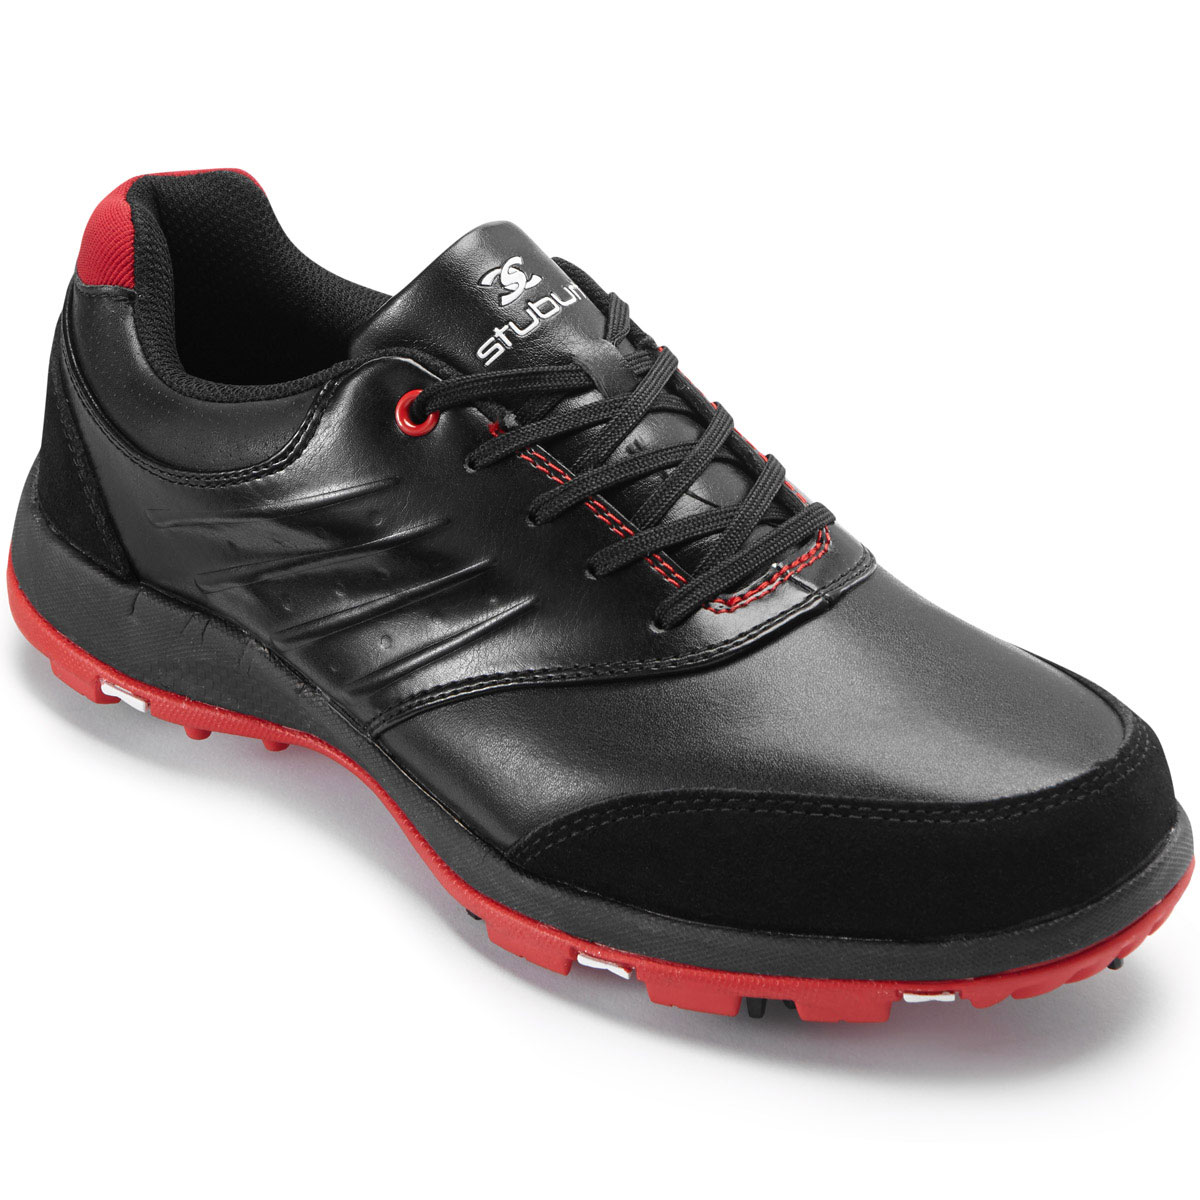 Spiked Sport Shoes